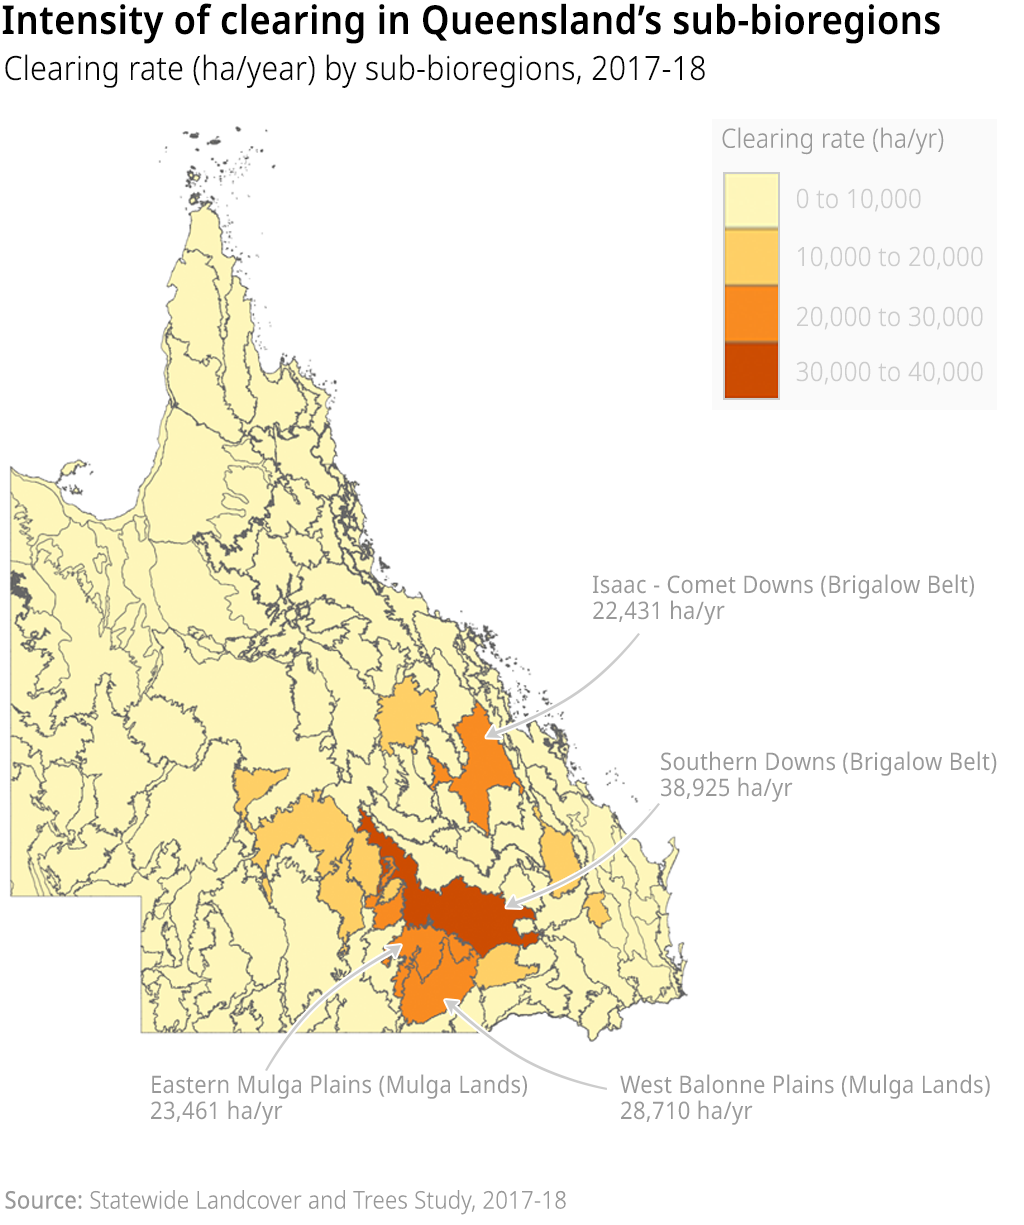 A map showing the intensity of clearing rates in Queensland's sub bioregions in 2018-19. Most of the clearing has happened in the Brigalow Belt and Mulga Lands bioregions